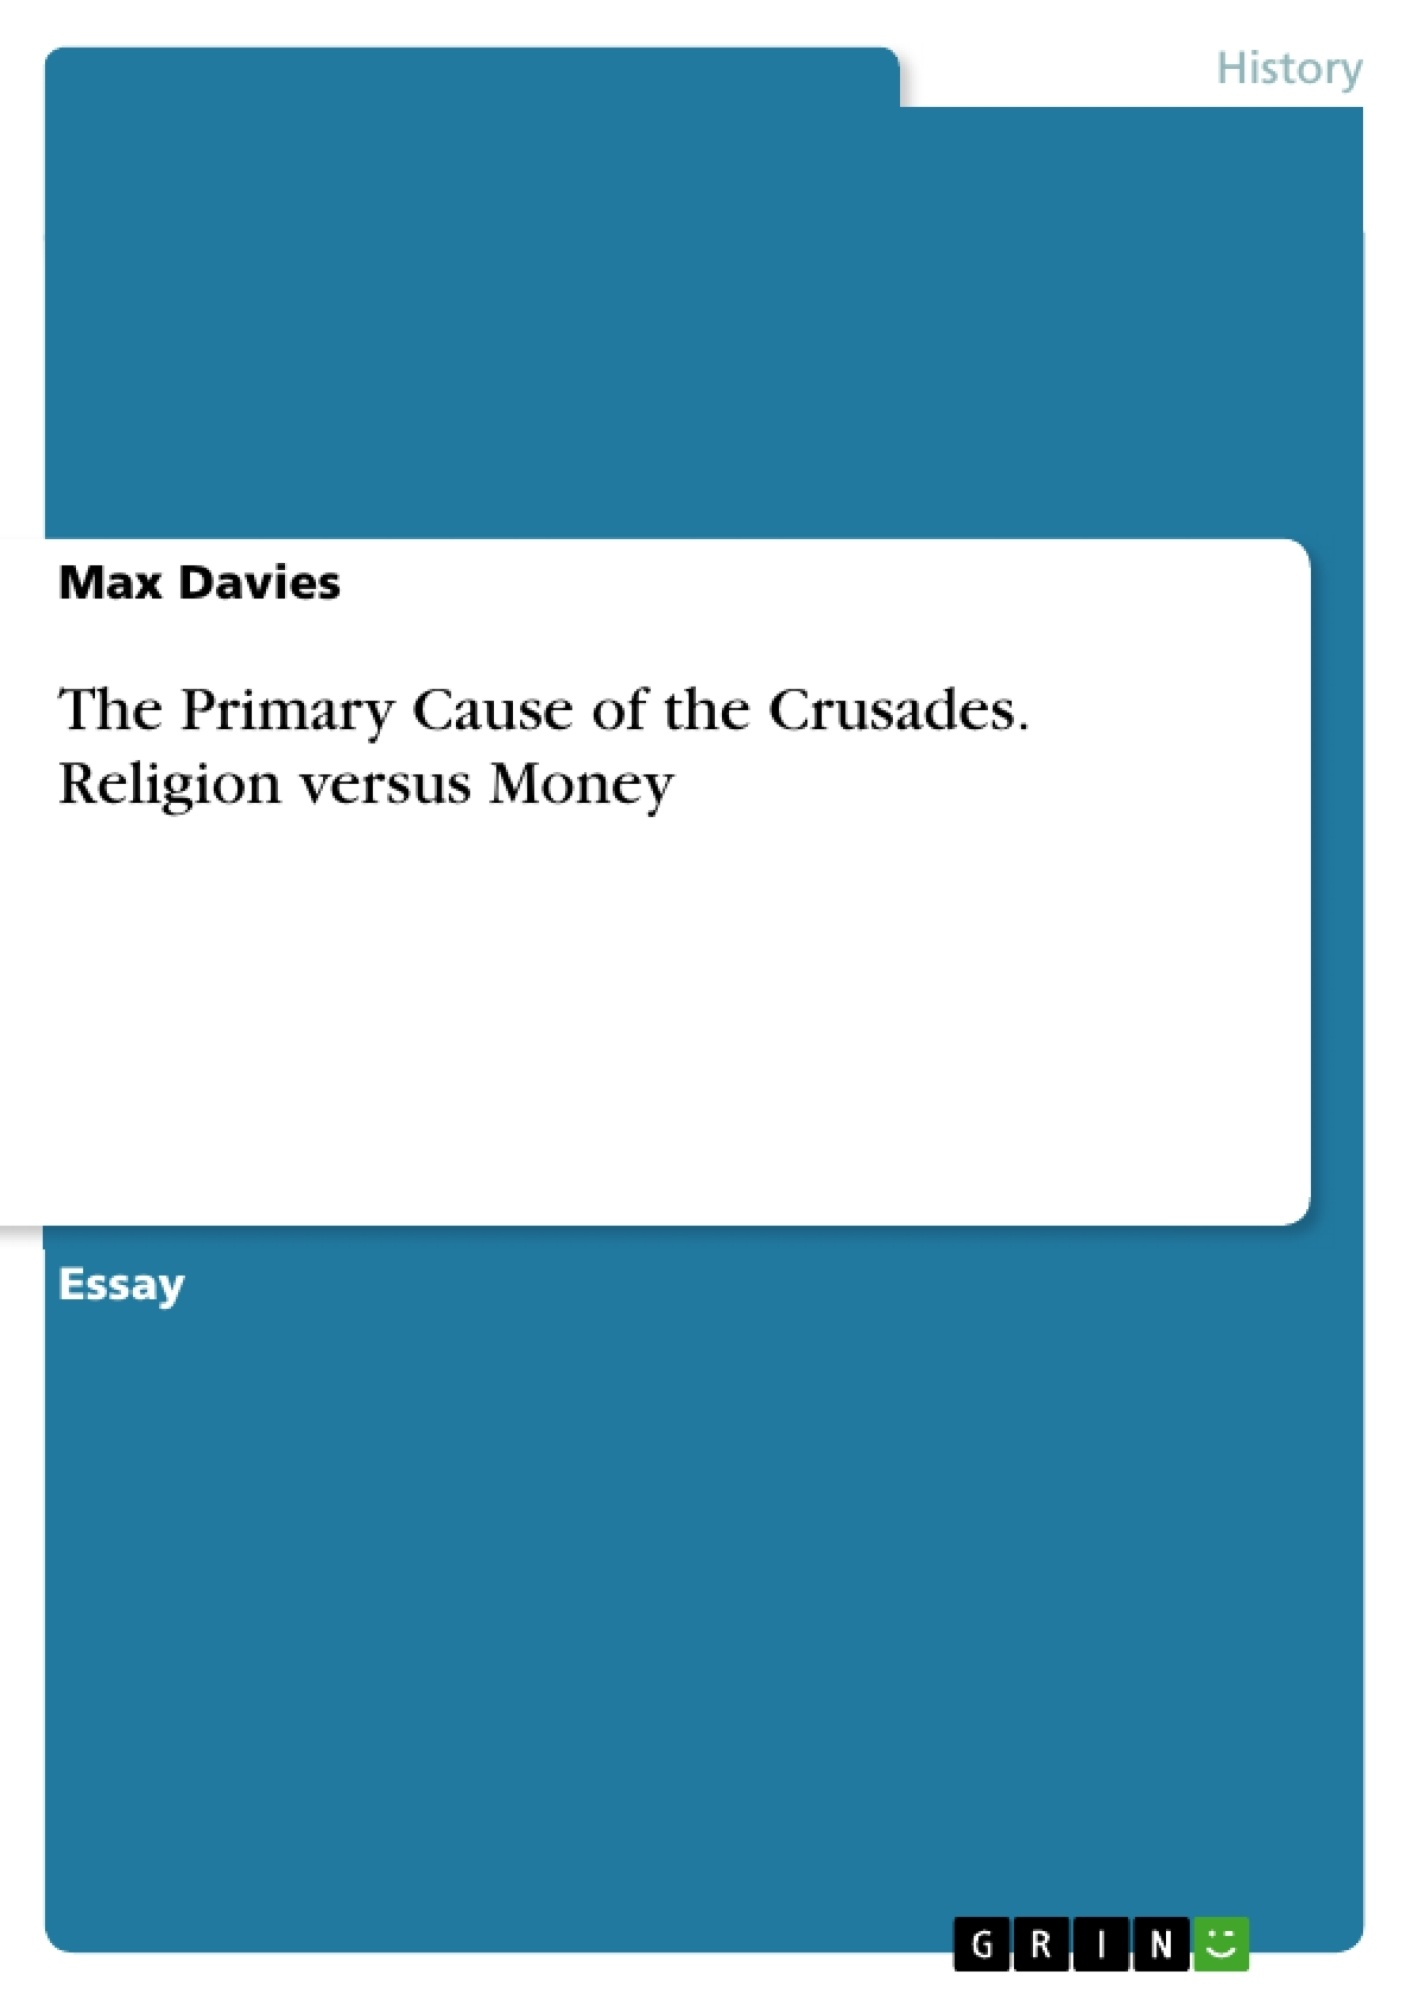 Title: The Primary Cause of the Crusades. Religion versus Money